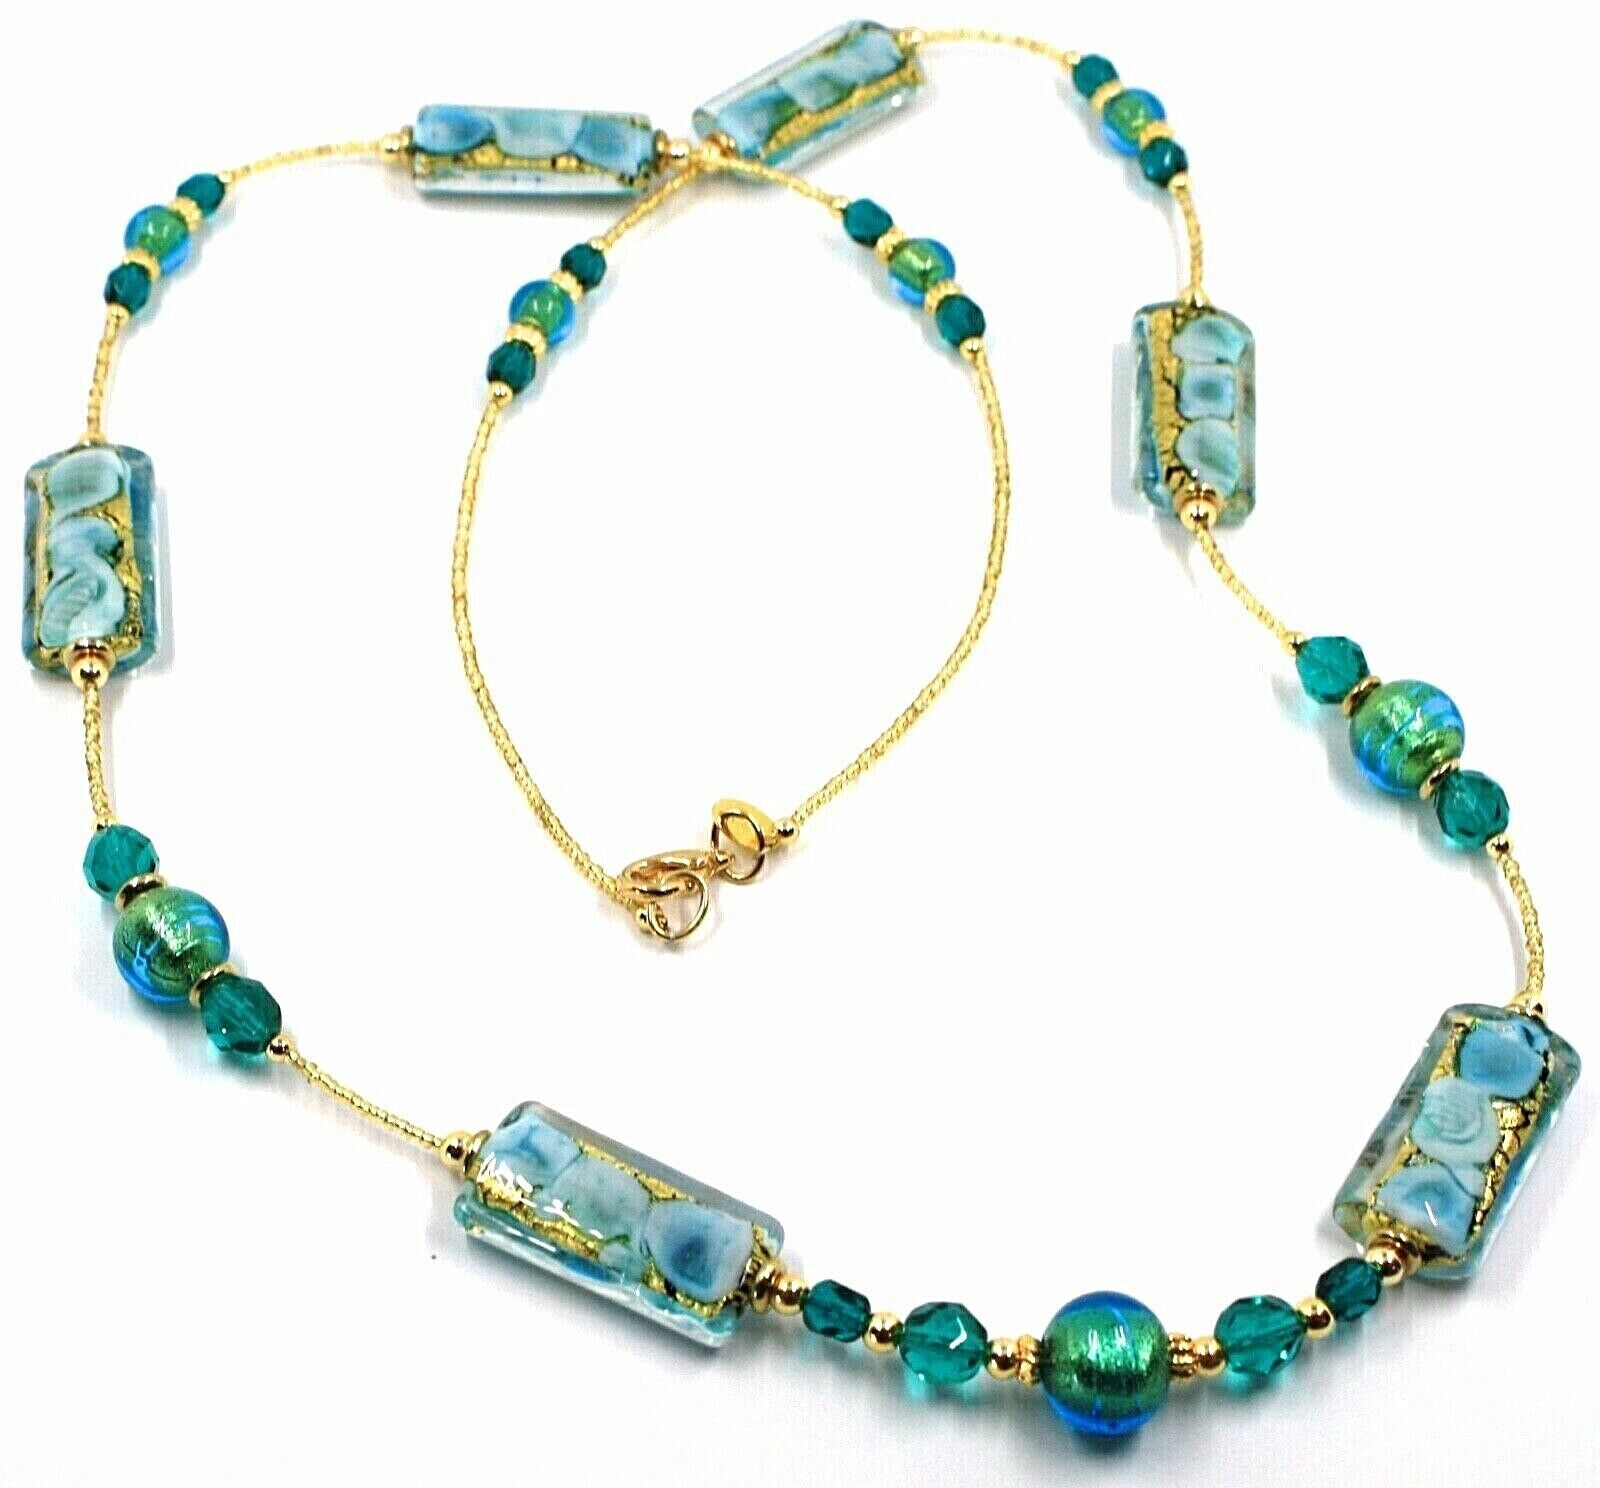 LONG NECKLACE BLUE MURANO GLASS RECTANGLE TUBE, SPHERE, GOLD LEAF, ITALY MADE